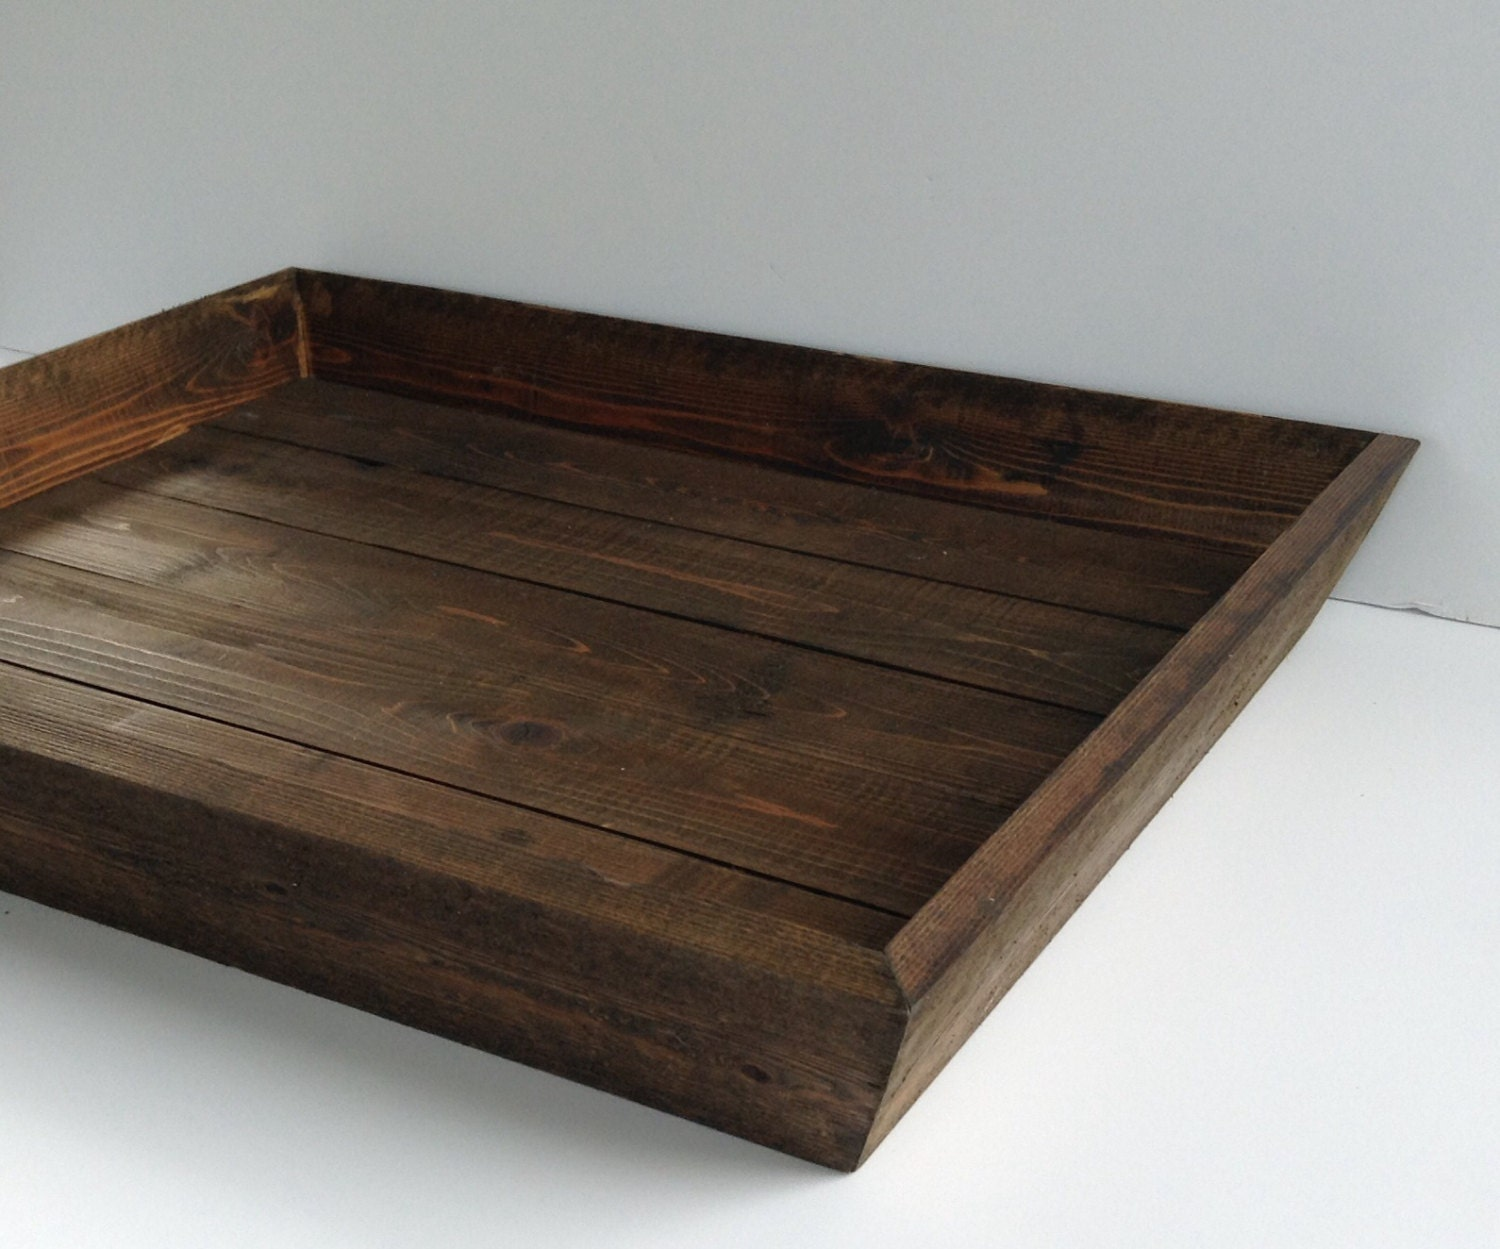 Dark Stained Wood Tray Rustic Wood Box Ottoman Tray Wooden